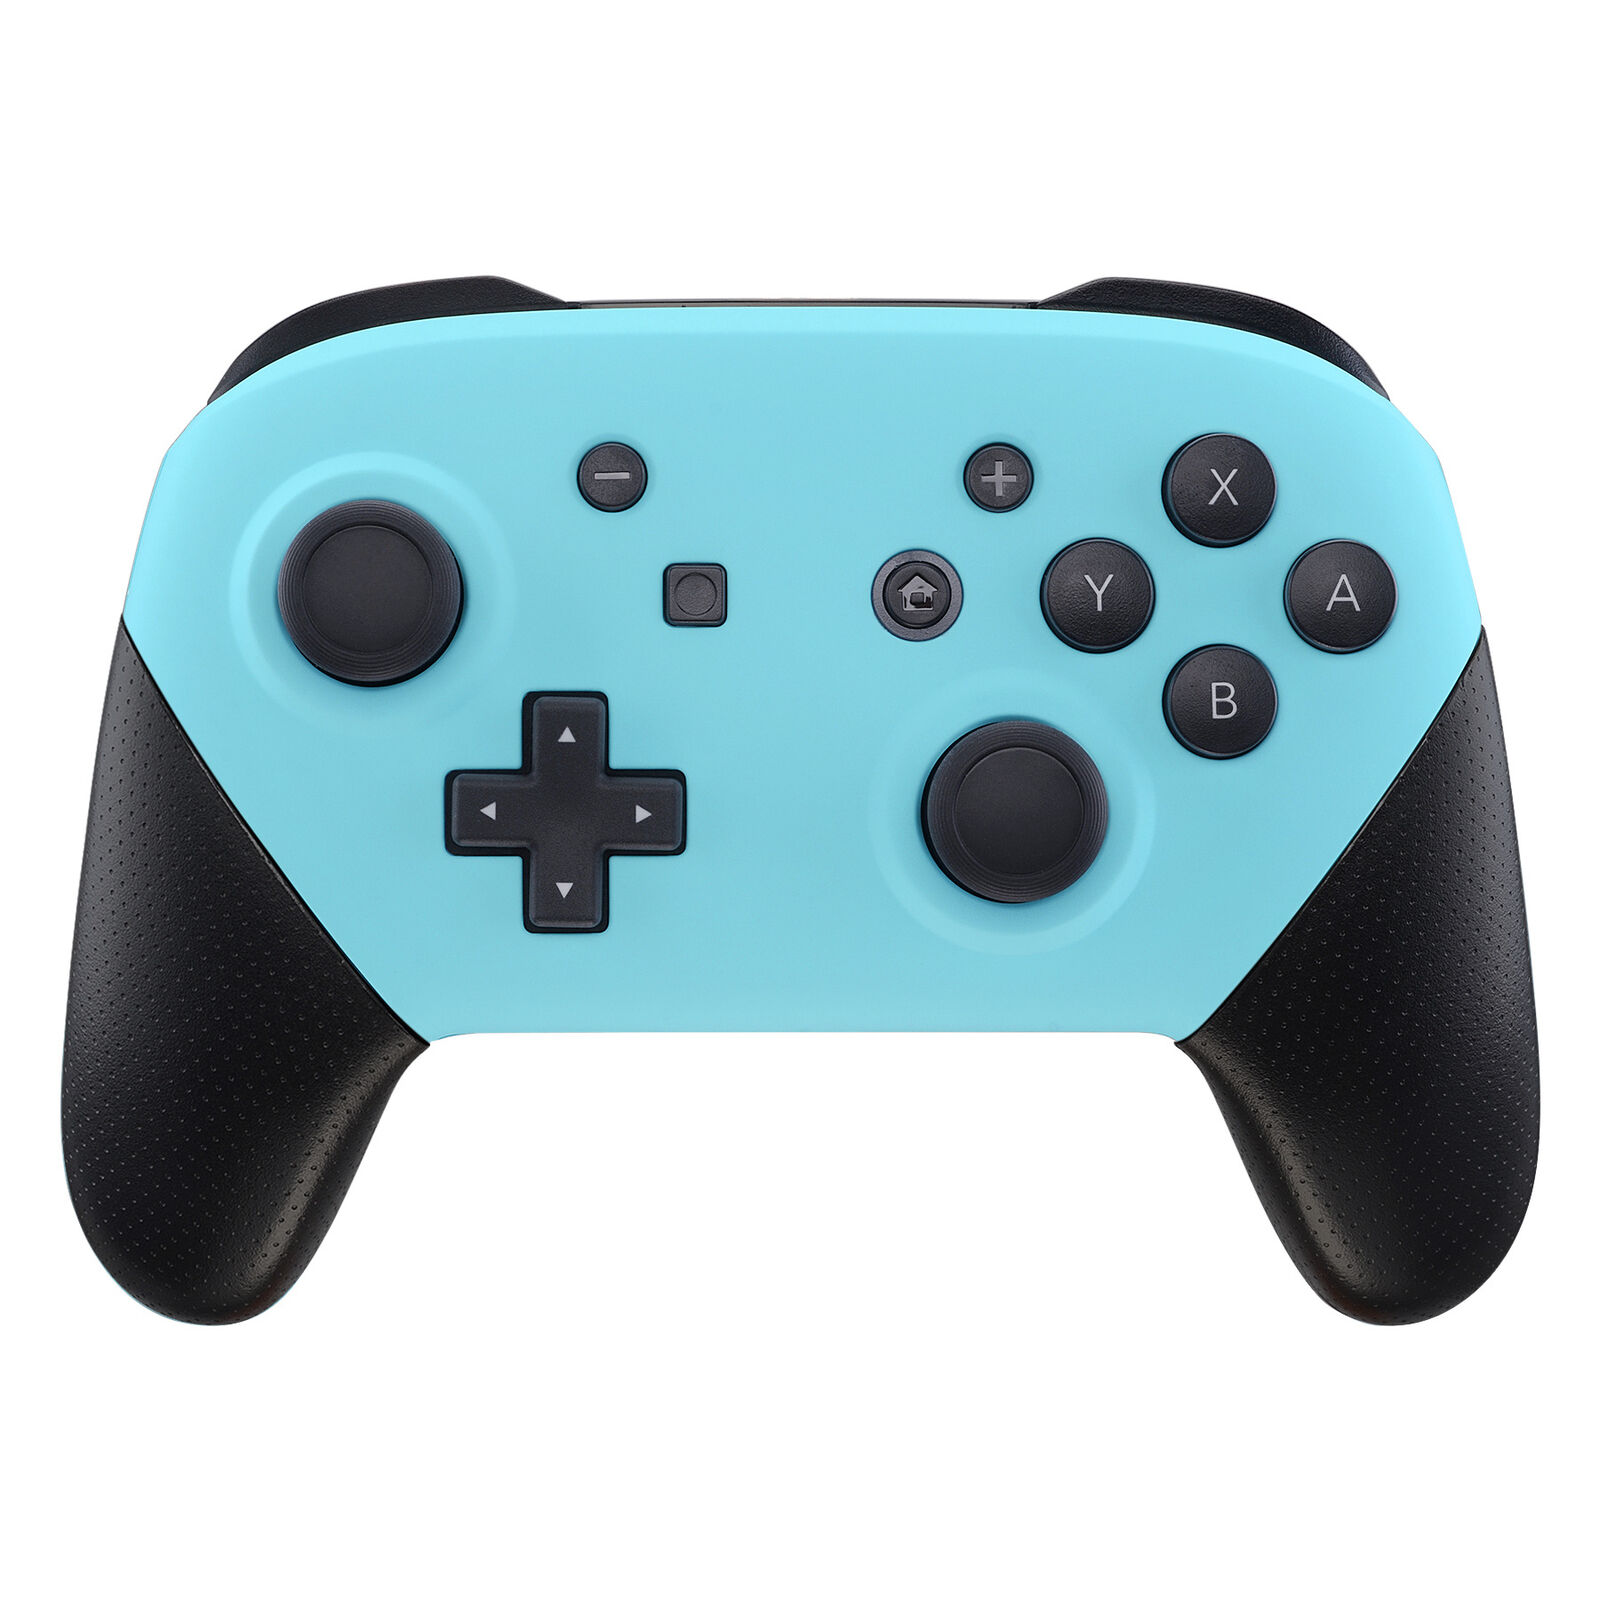 Nintendo Switch Pro Controller Black and Baby Blue Faceplate